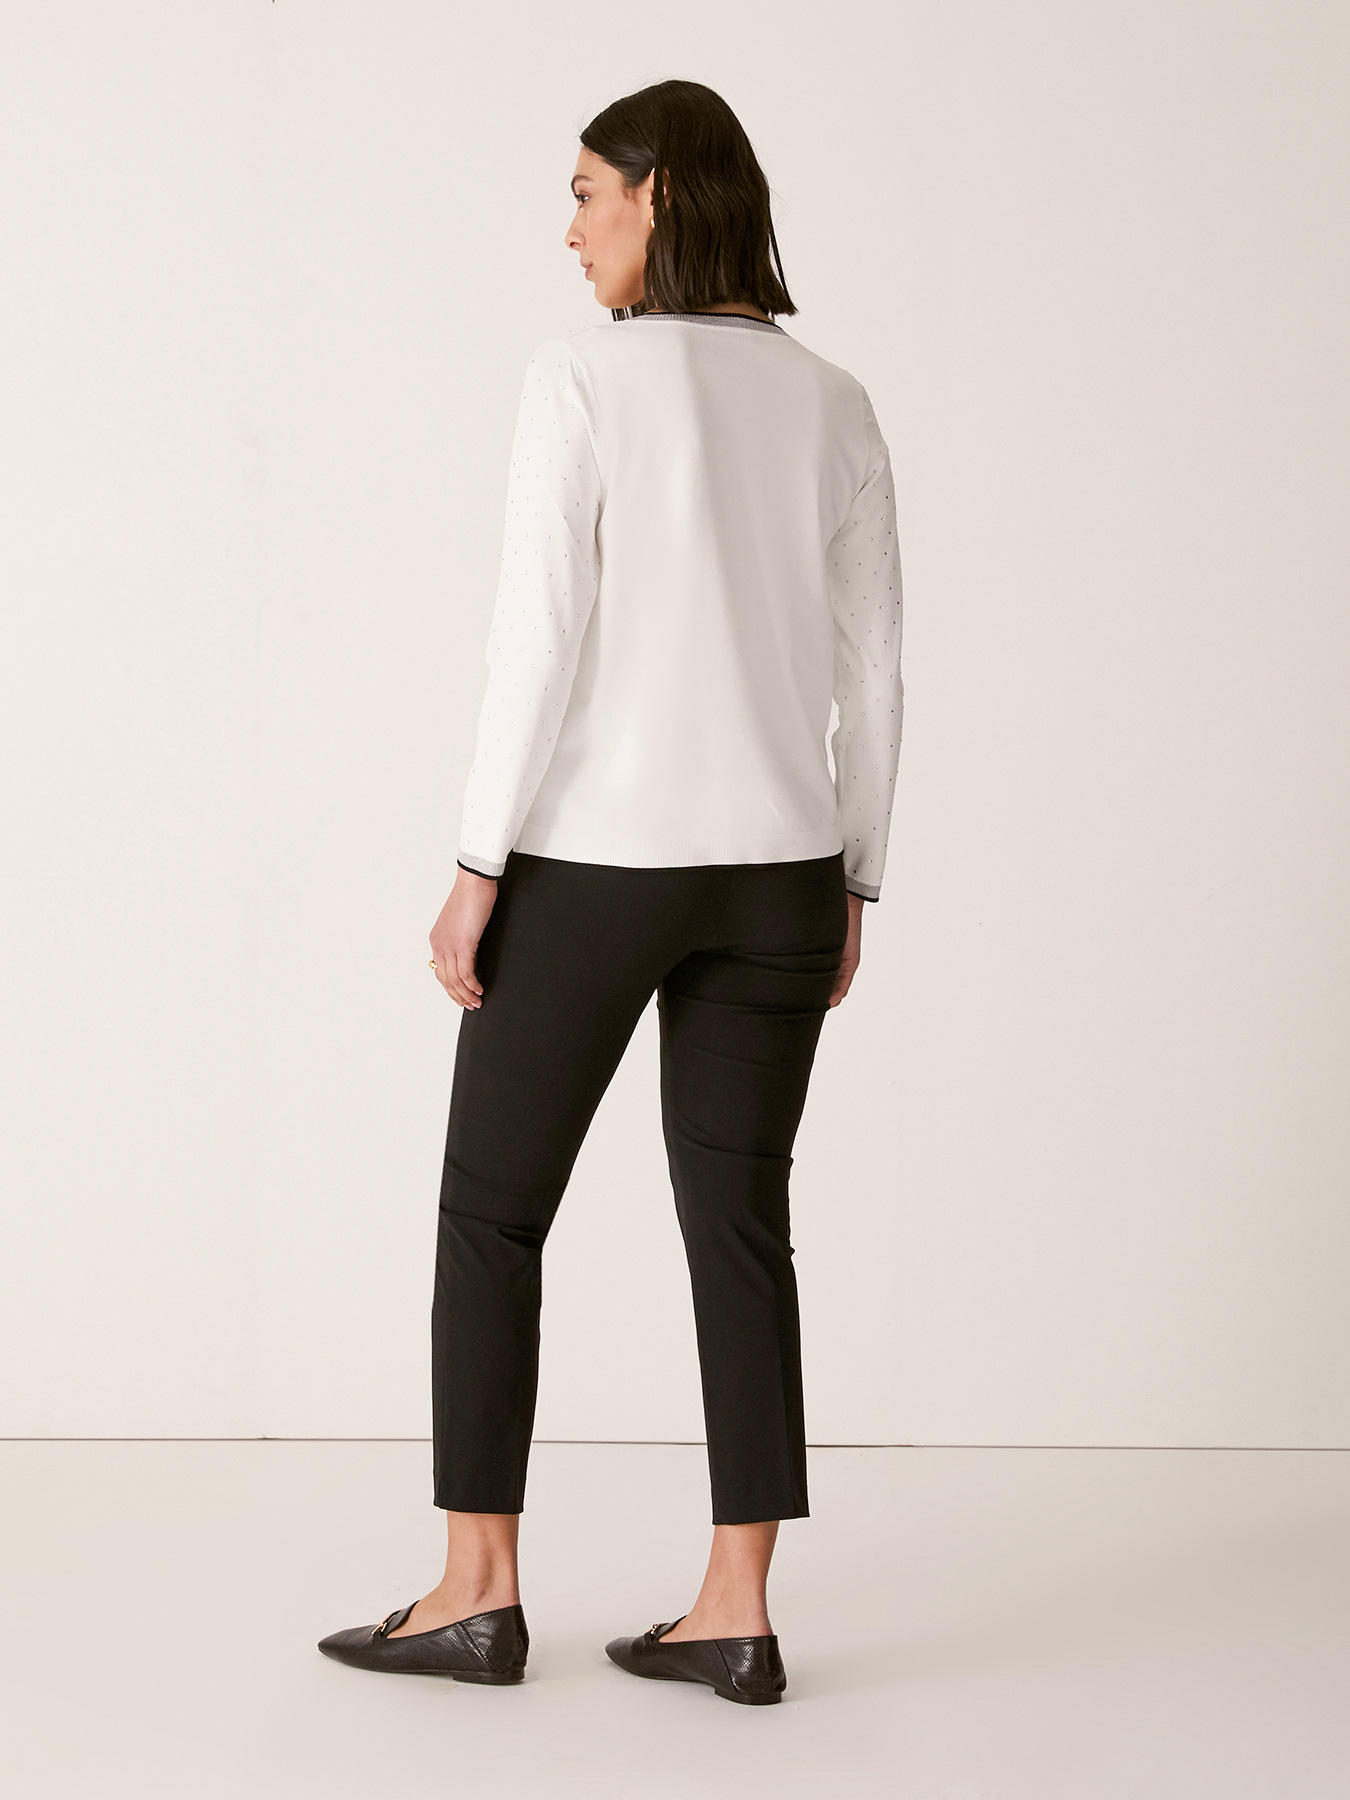 ELENA MIRO' | Trousers Conformed | P106Y002PZ33